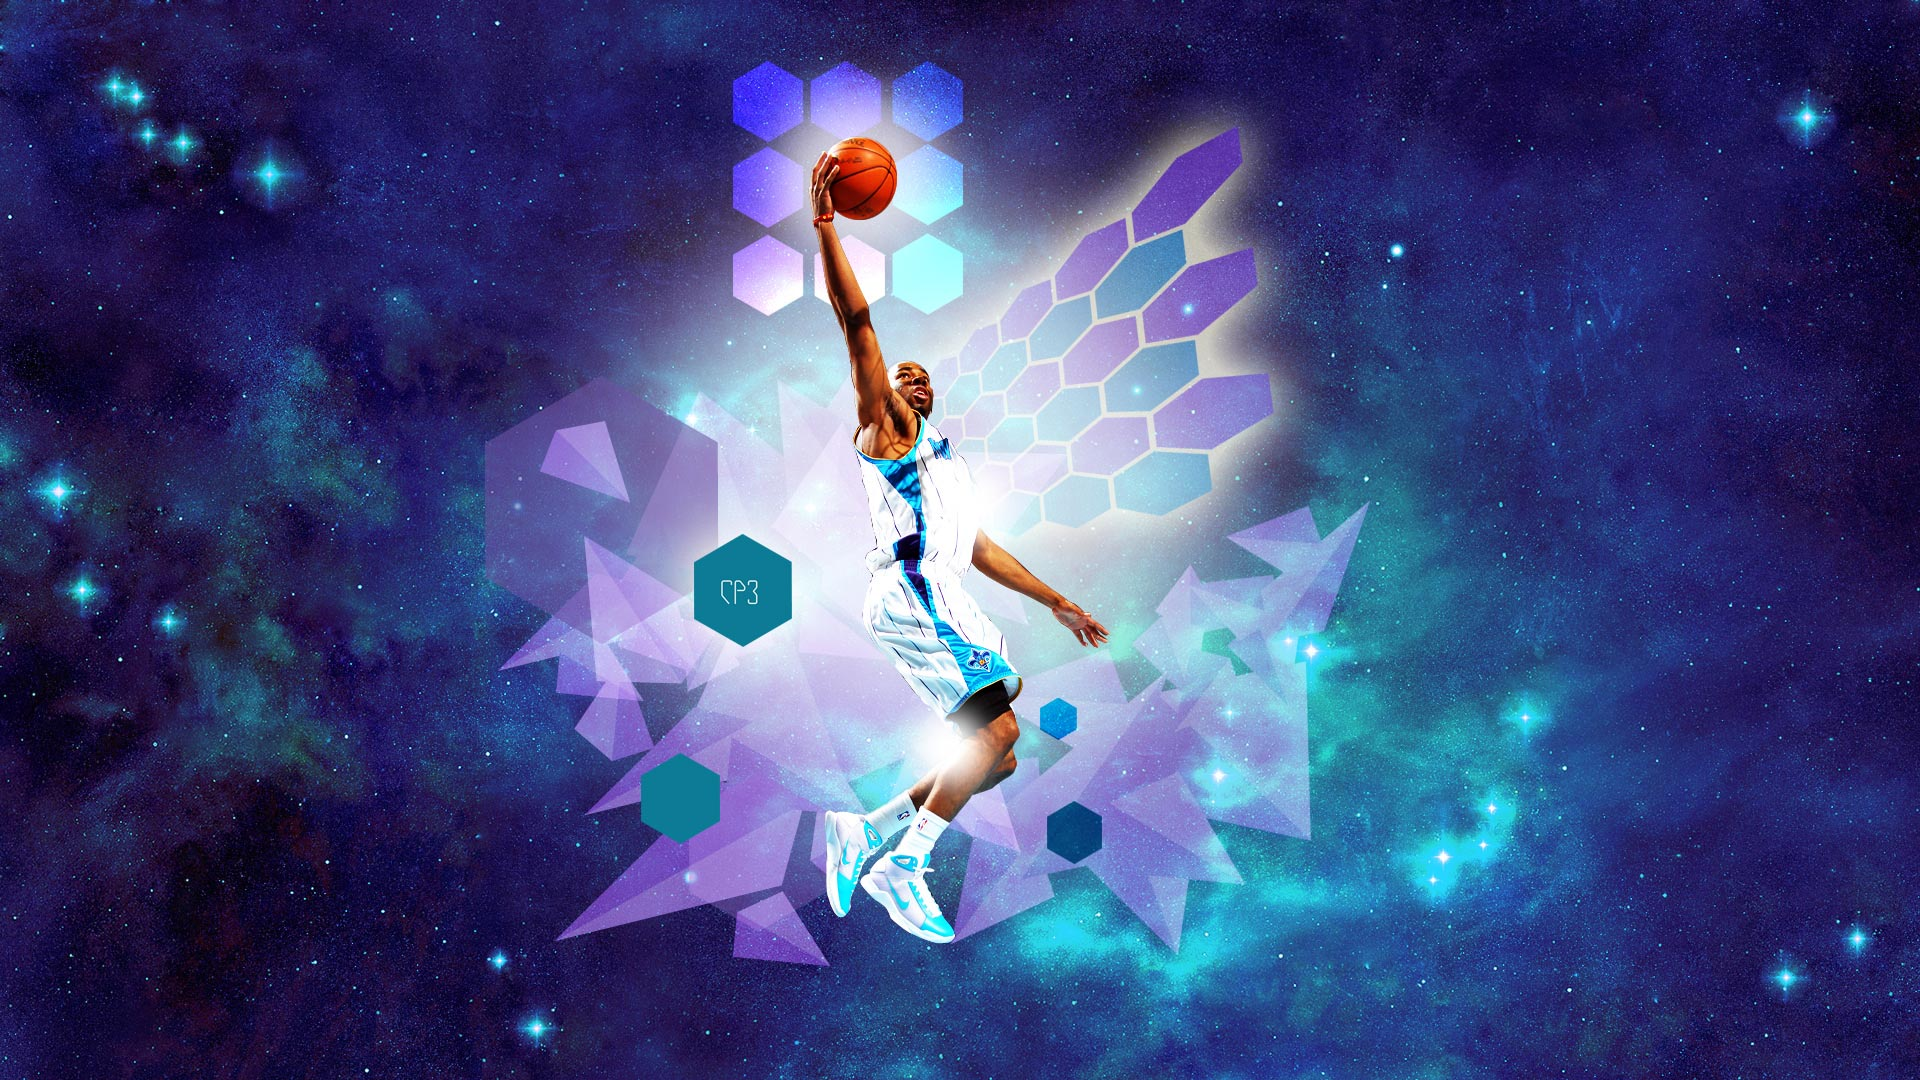 New Orleans Hornets Wallpapers CP3 Layup In Space Widescreen Wallpaper